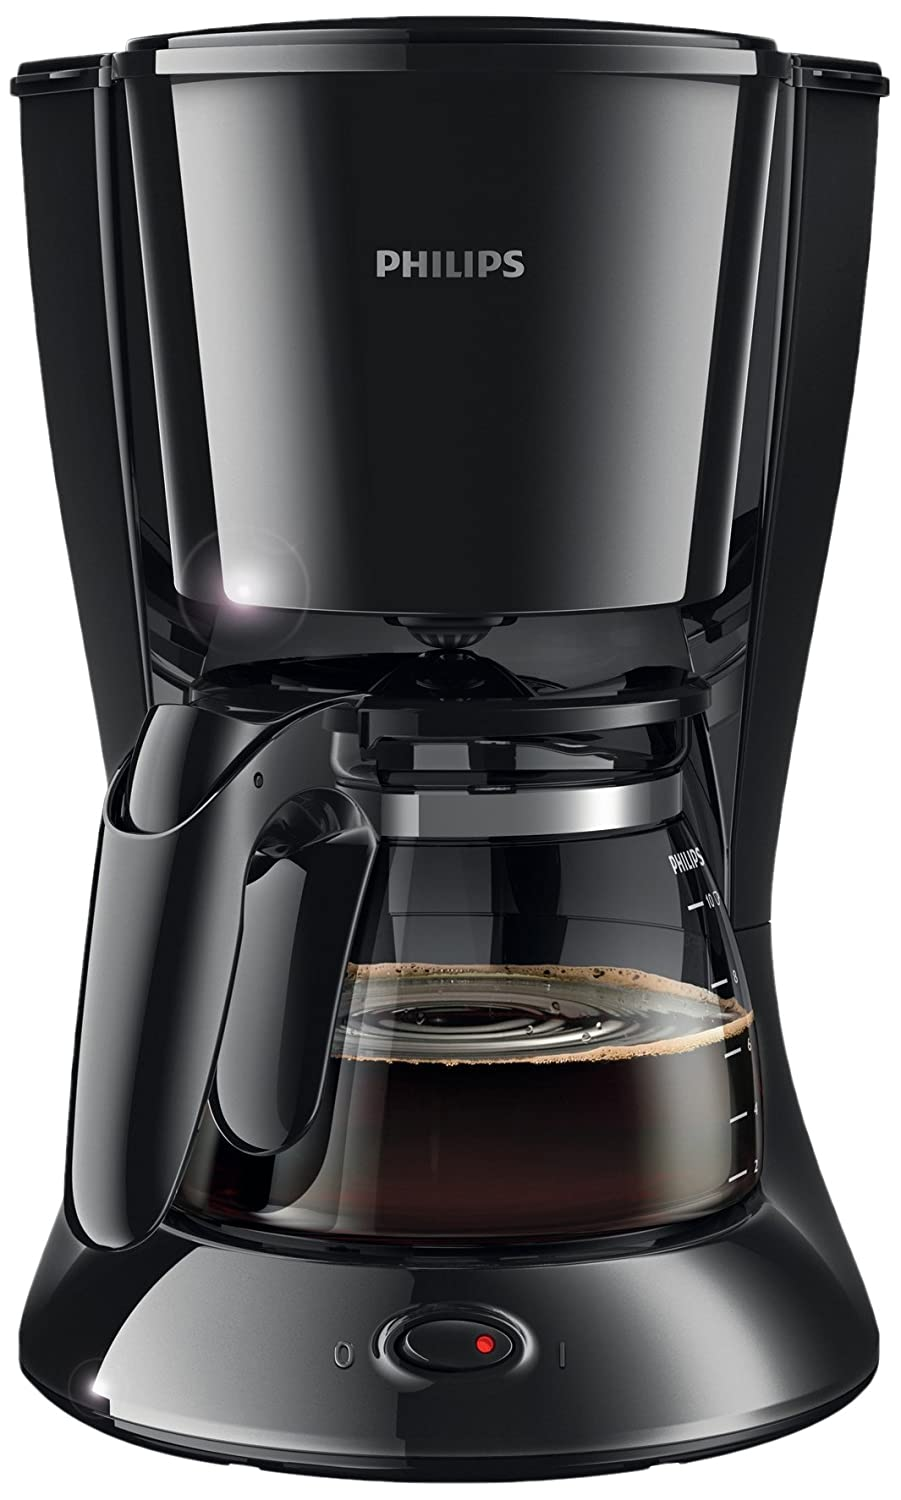 Philips Coffee Maker Flipkart : Philips coffee maker specifications Archives - Buy Electronics Online in India from Amazon ...